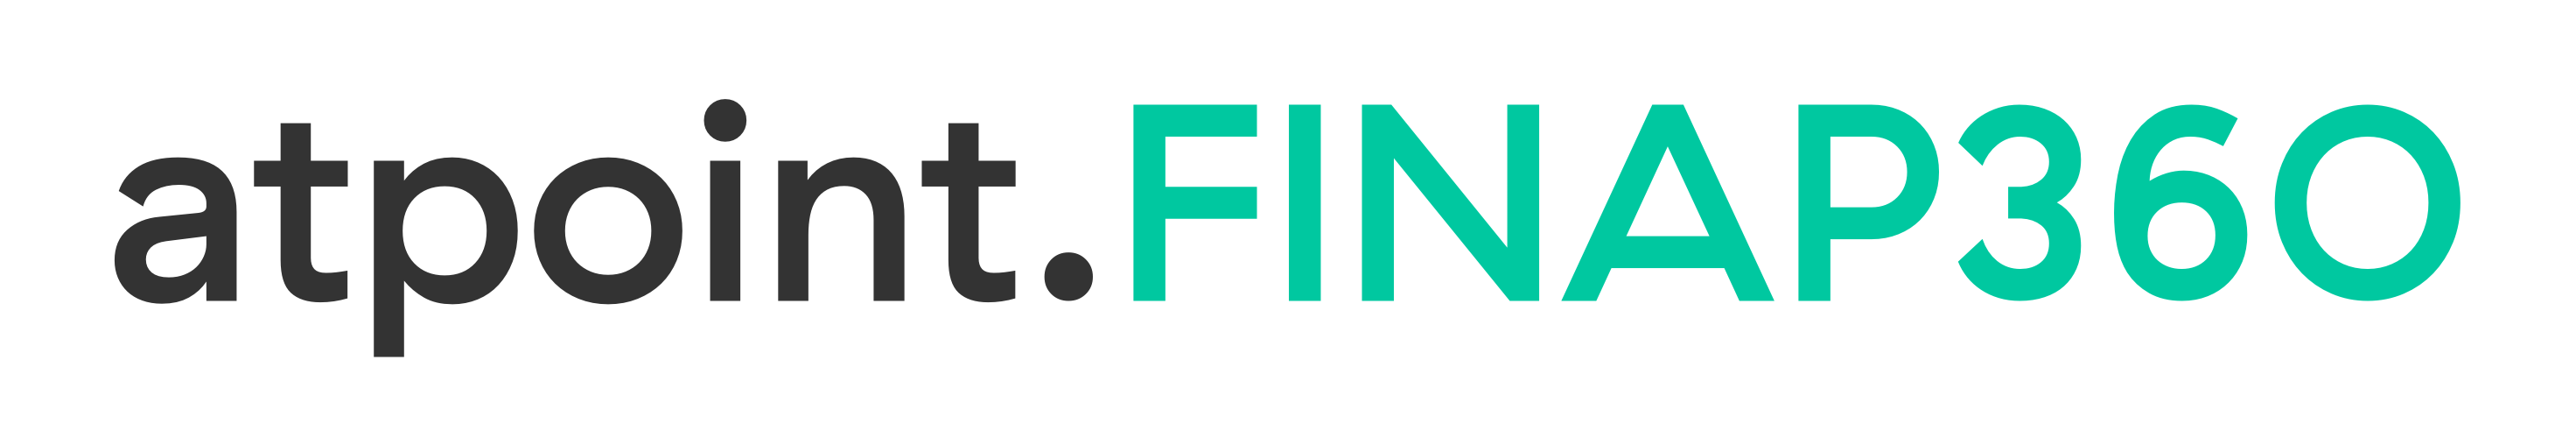 atpoint.FINAP360 (png)